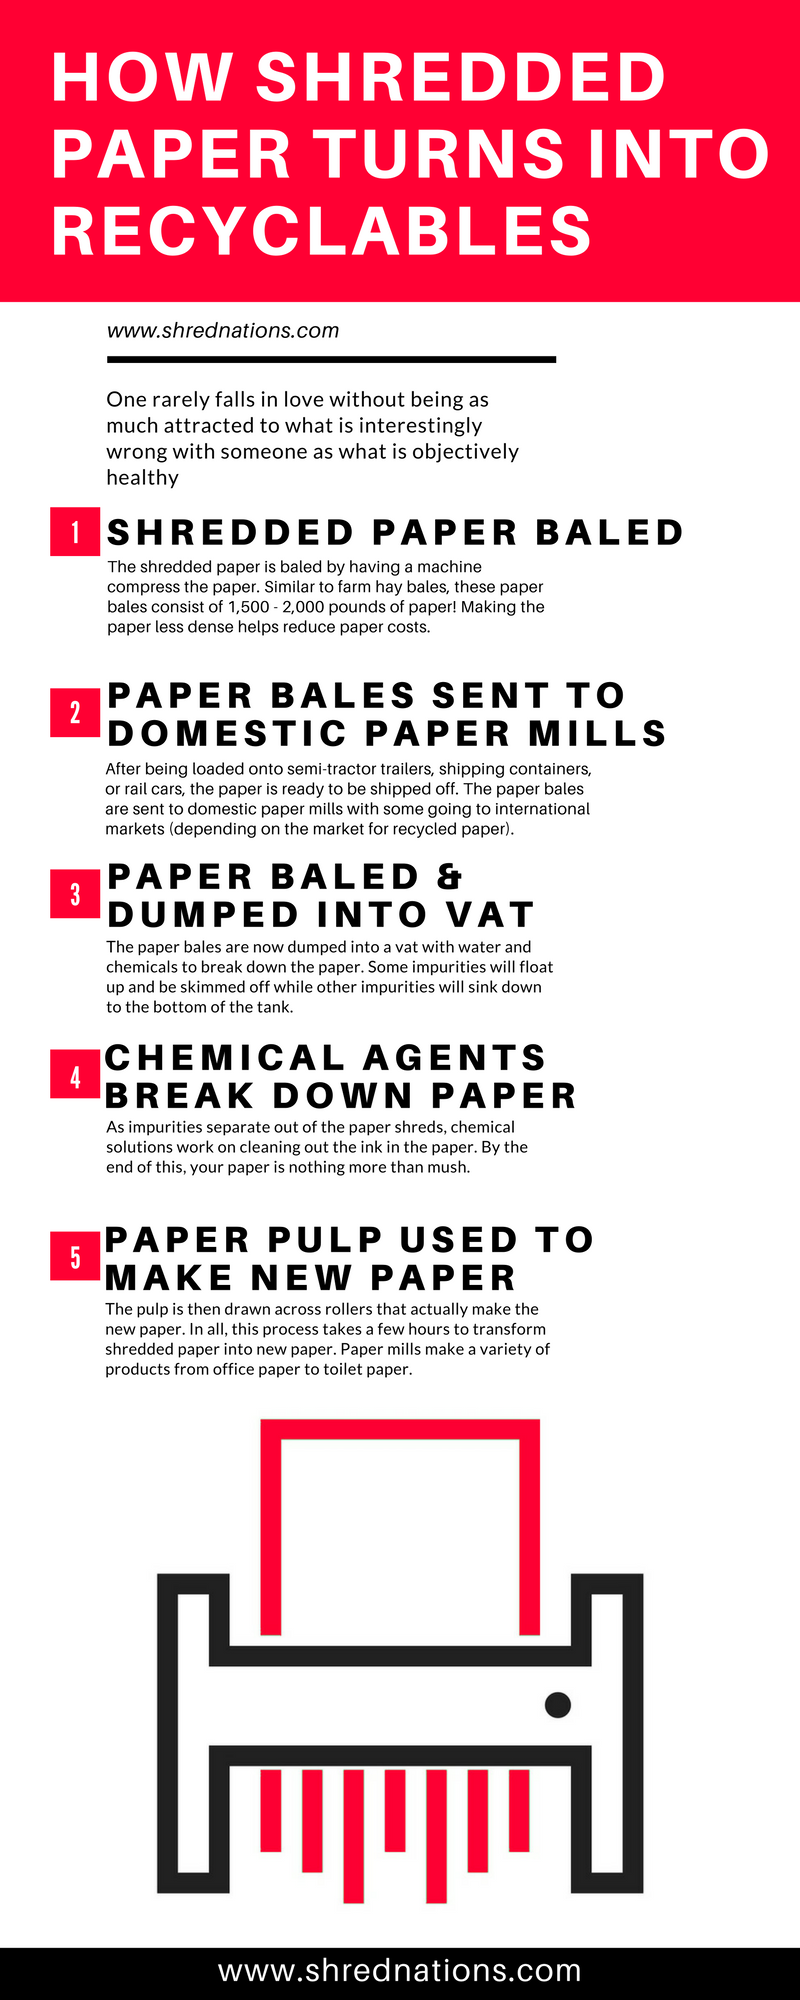 What Happens to Paper After it's Shredded?